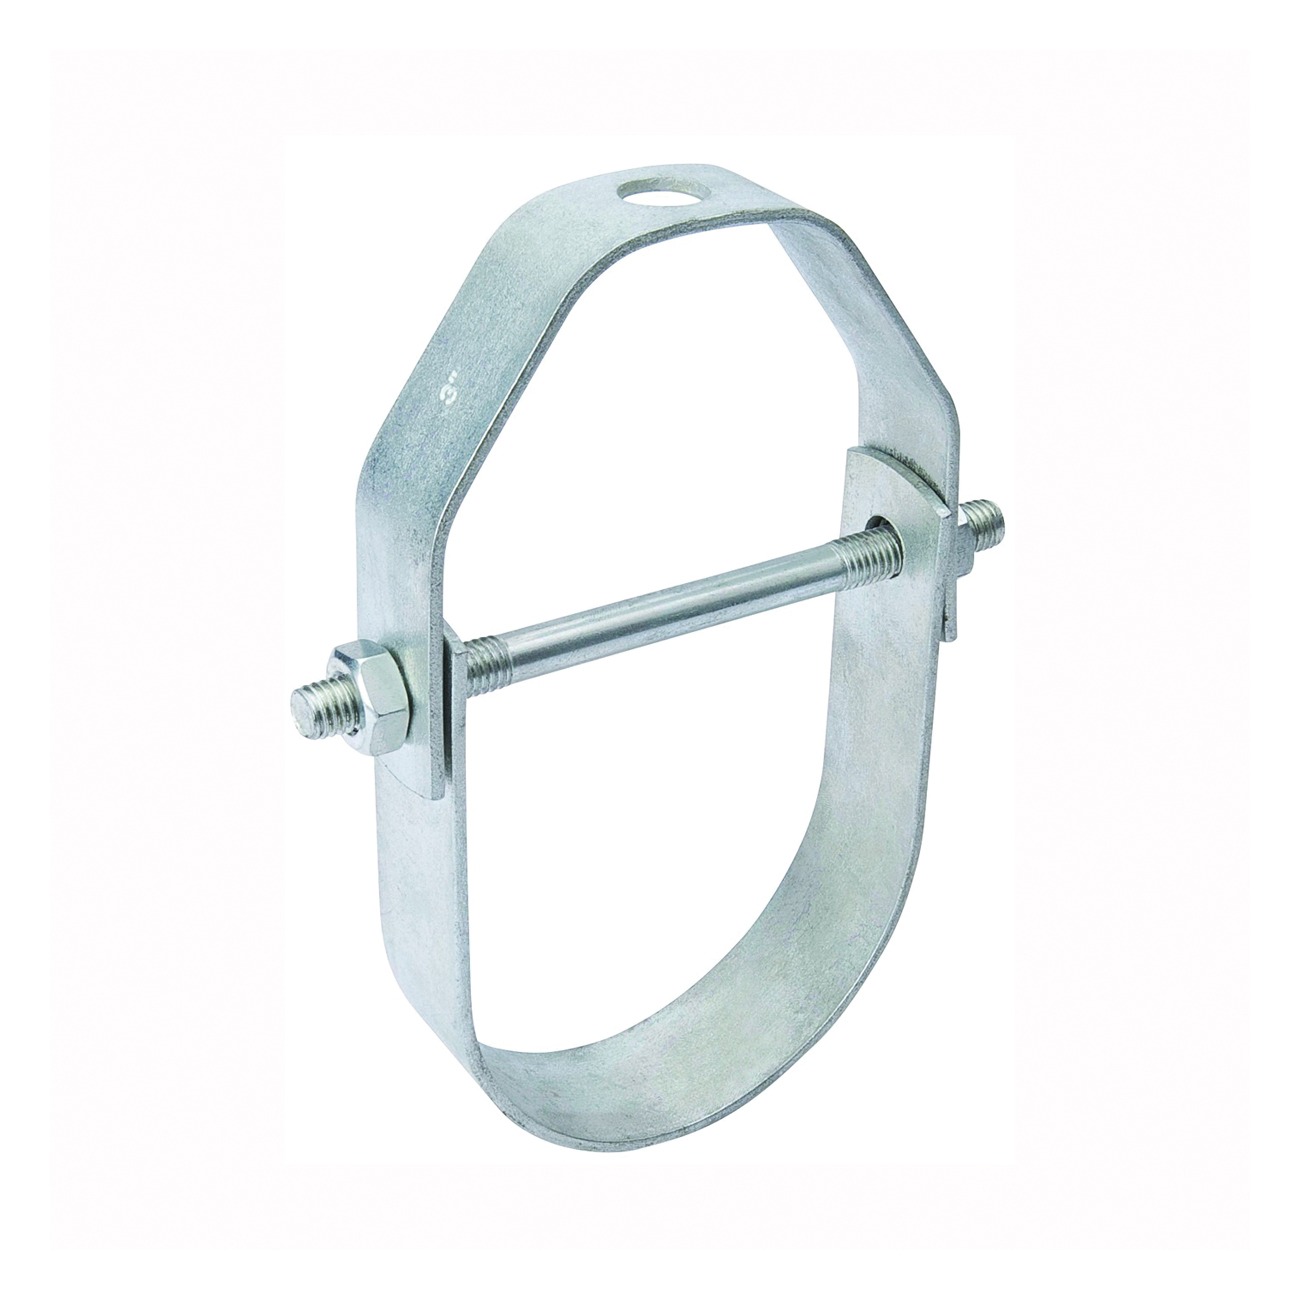 Picture of B & K G65-050HC Pipe Hanger, 1/2 in Opening, Galvanized Steel, 20